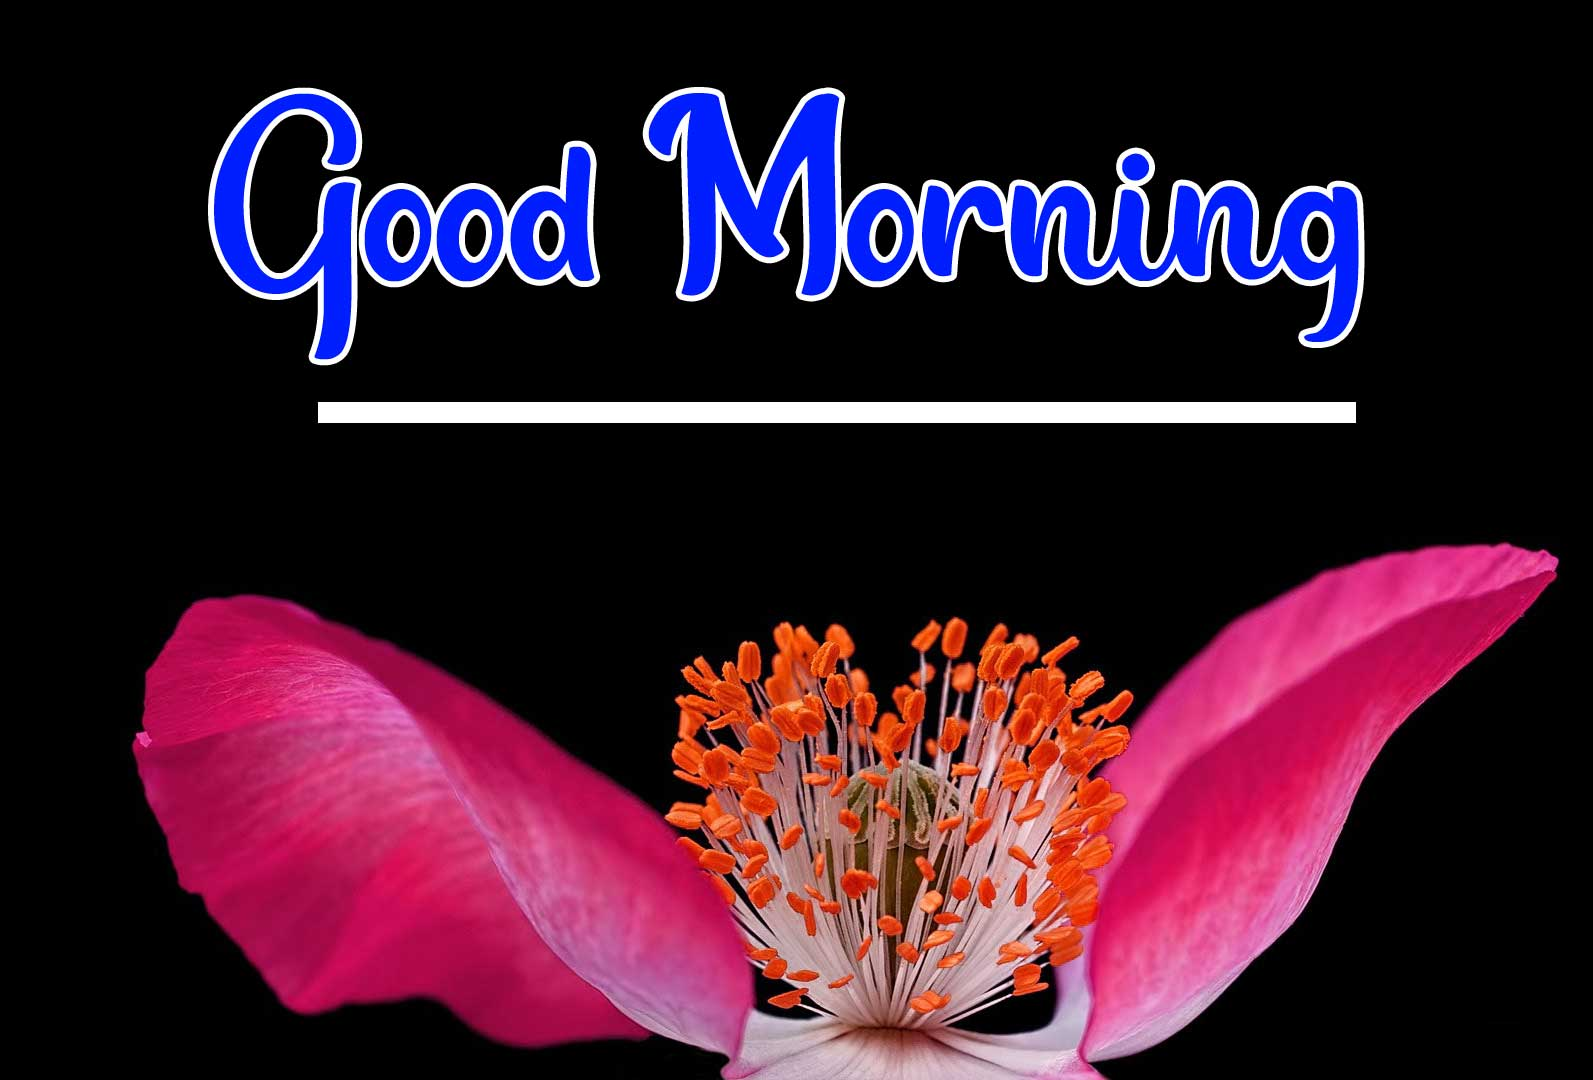 Beautiful Good Morning Wallpaper 91